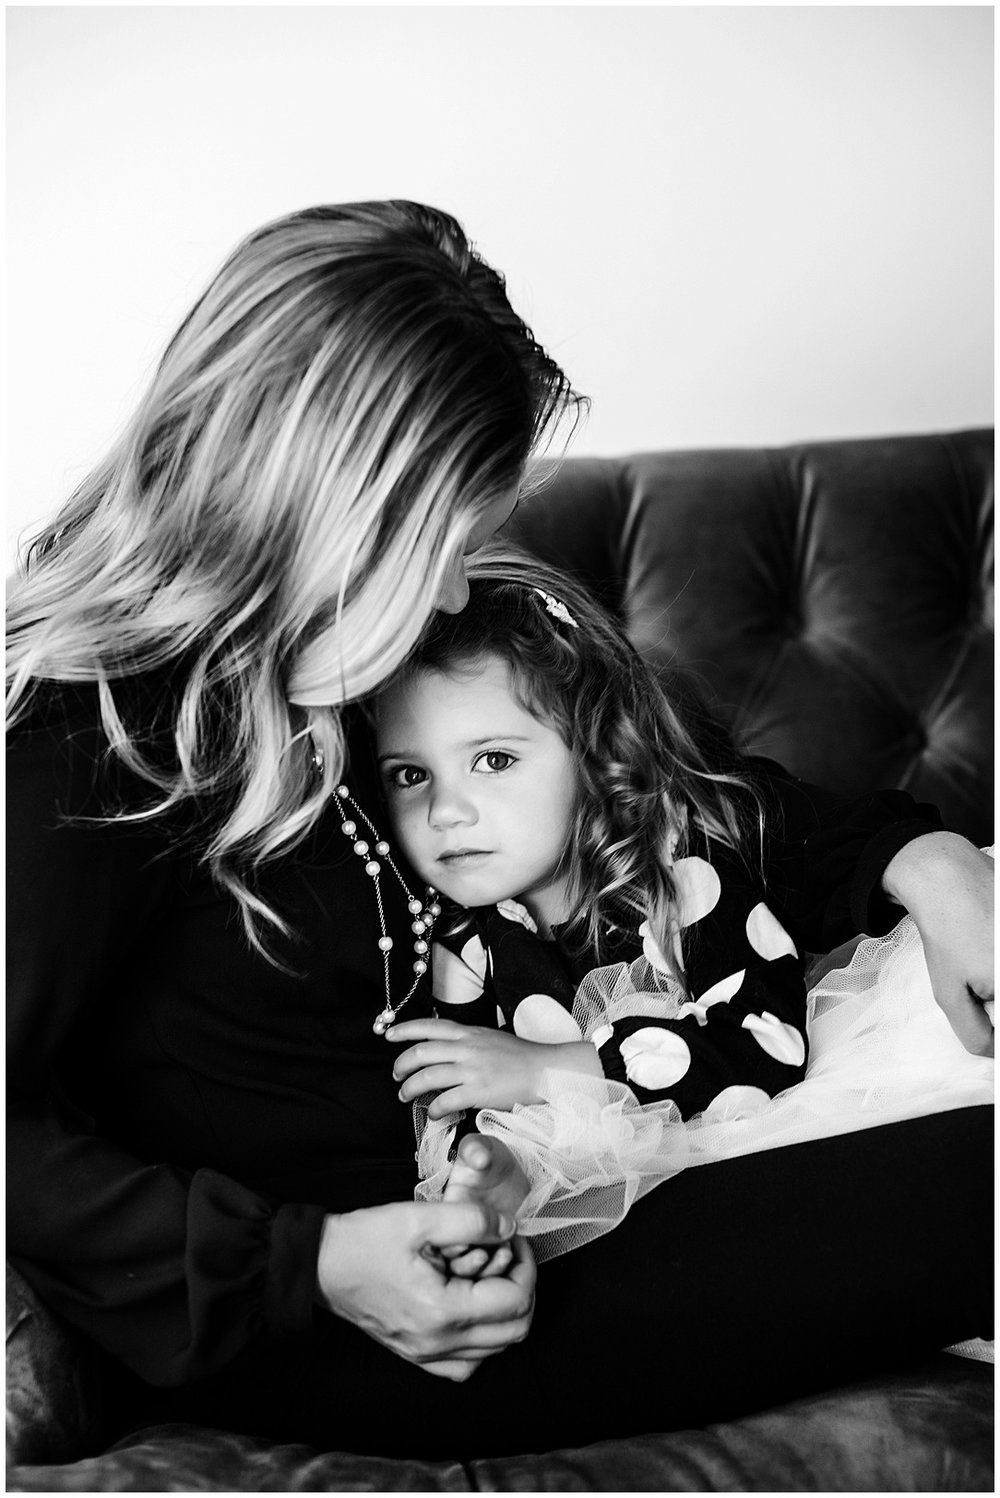 Tessa_marie_photography_family_portrait_photographer_mother_daughter_family_sessions_timeless_elegance_Vogue_magazine_style_portraits_contemporary_portraits_0153.jpg